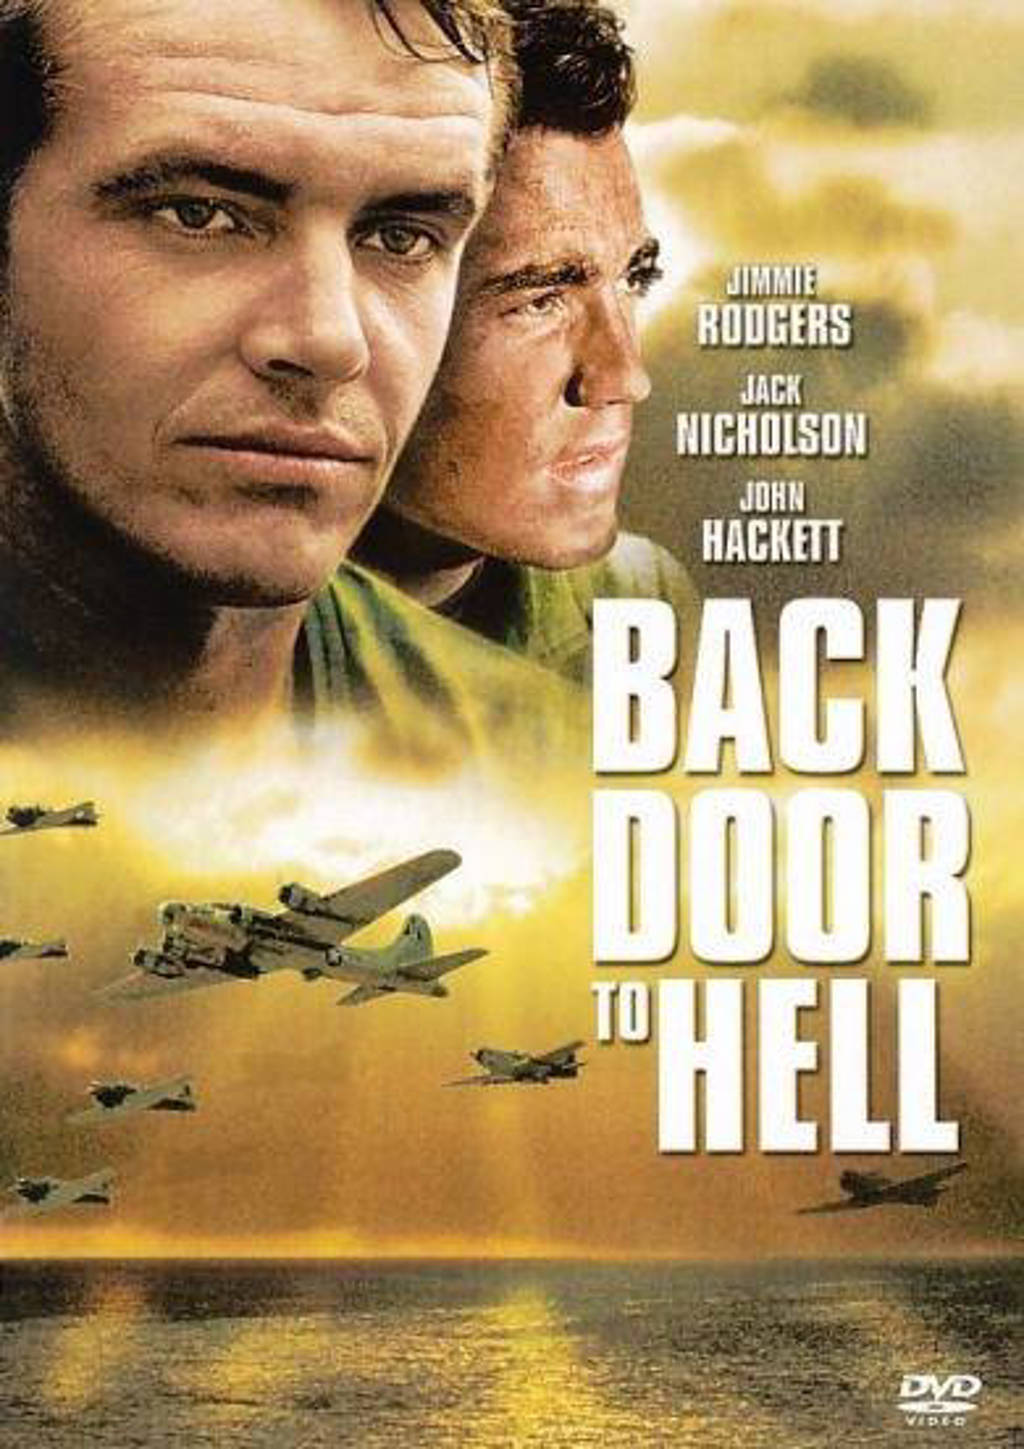 Backdoor to hell (DVD)